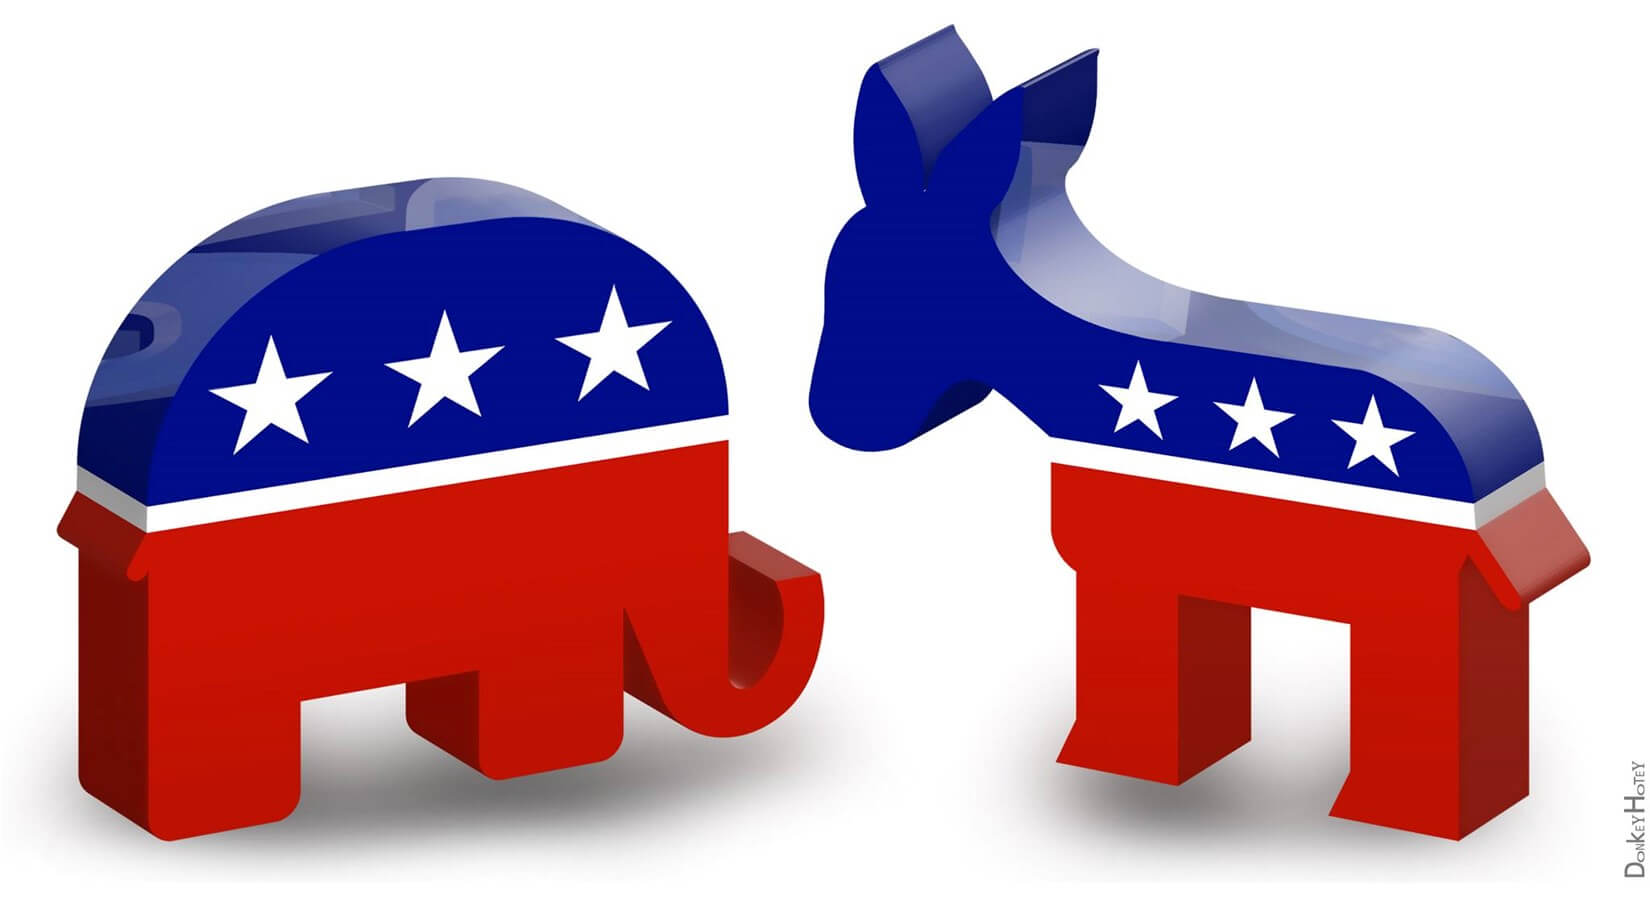 Supporters clipart moving forward Clinton Sanders Daily Politics Hour